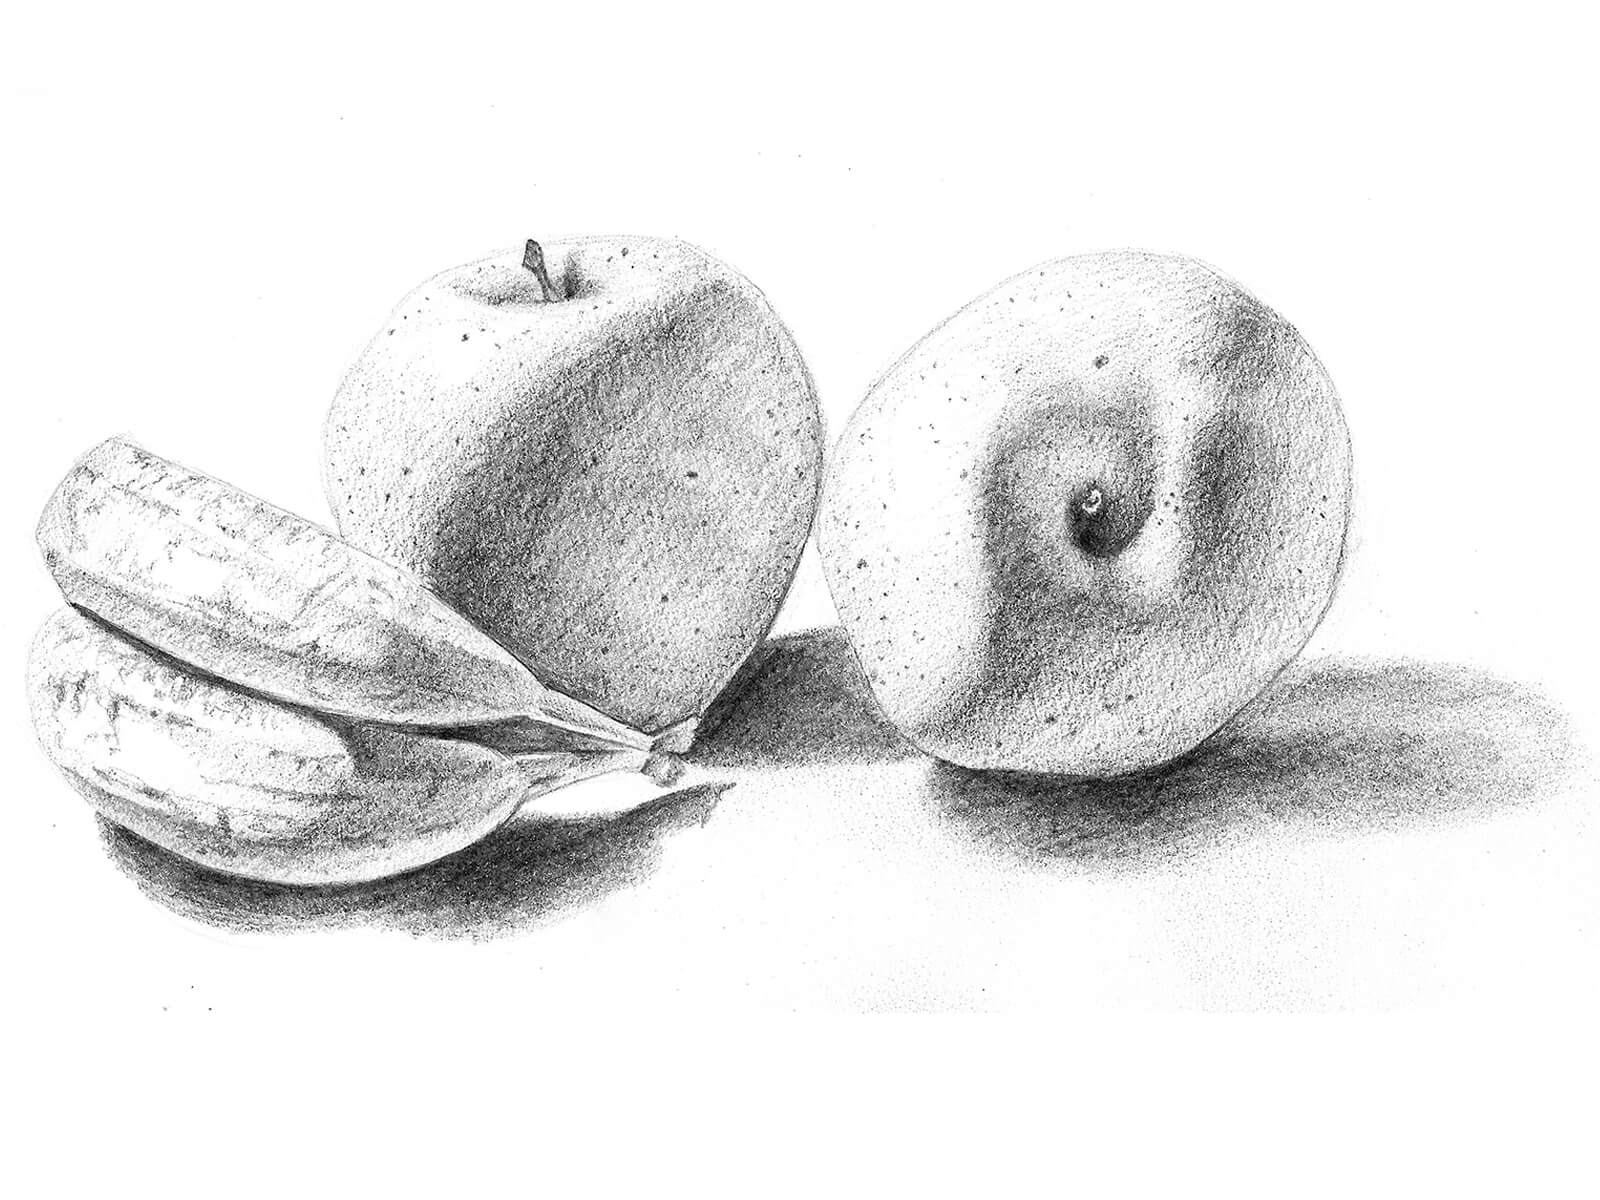 Black-and-white drawing of a pair of bananas turned on its side next to two apples. The fruit is lit from the left.